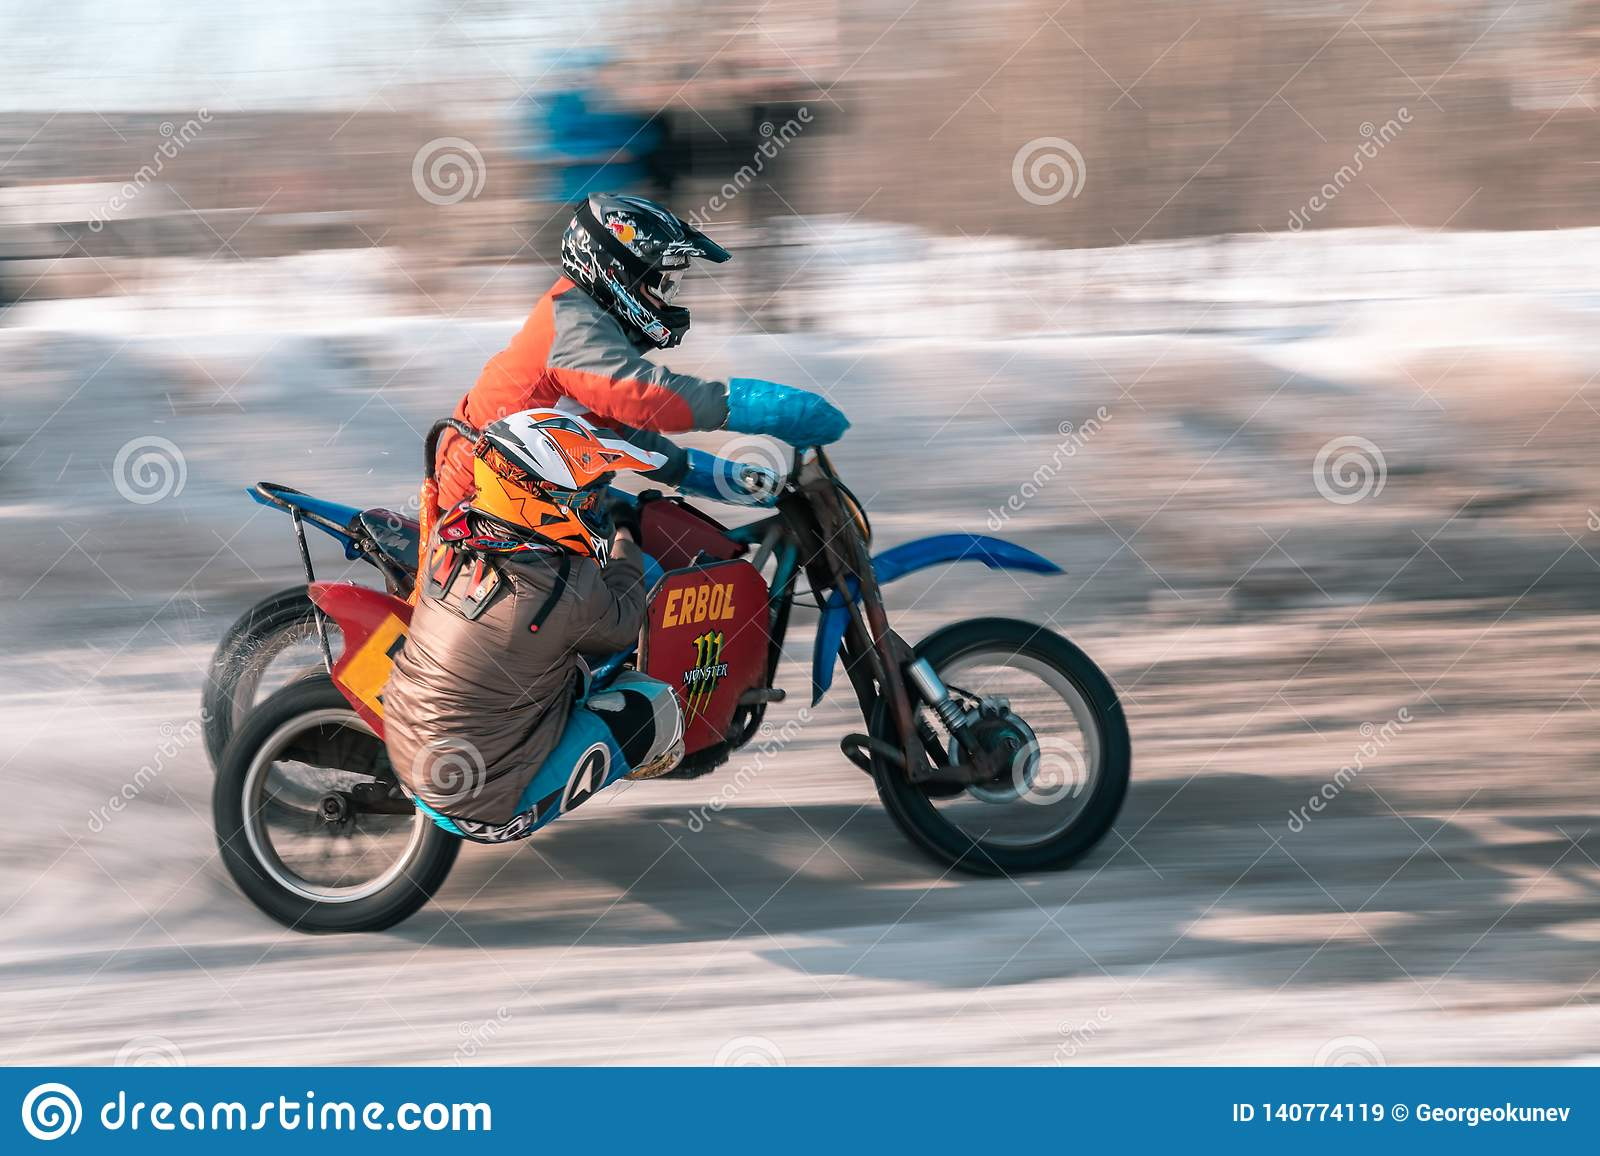 The rear wheel motocross bike